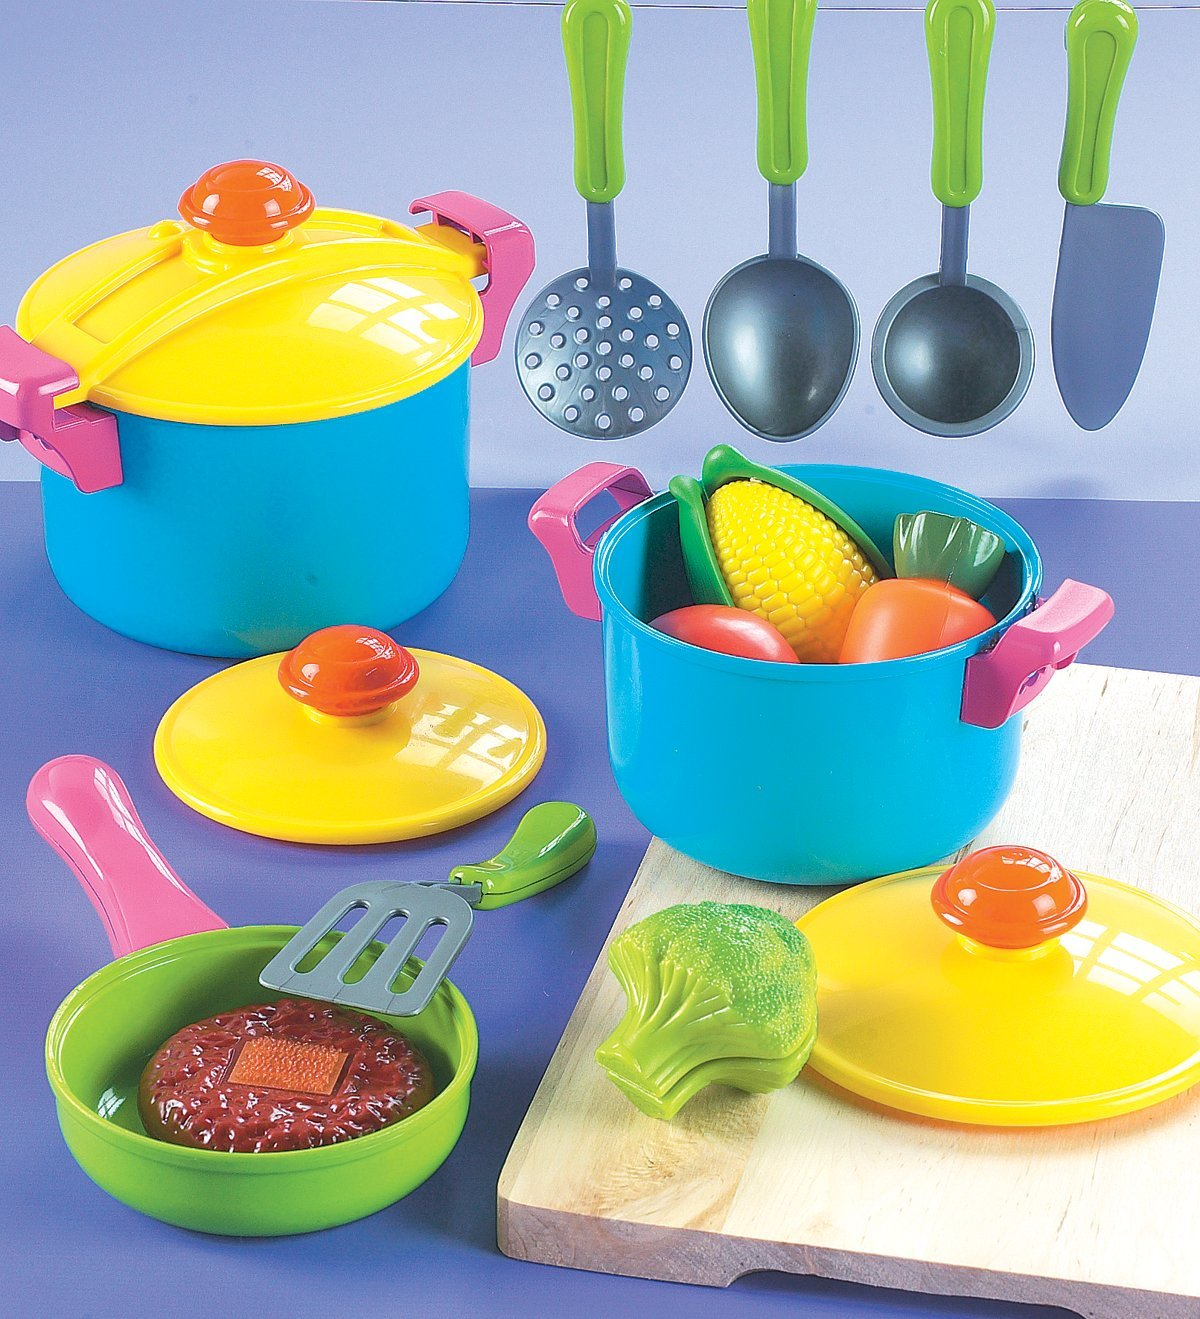 Small World Toys Living - Young Chef Cookware 11 Pc. Playset by Small World Toys